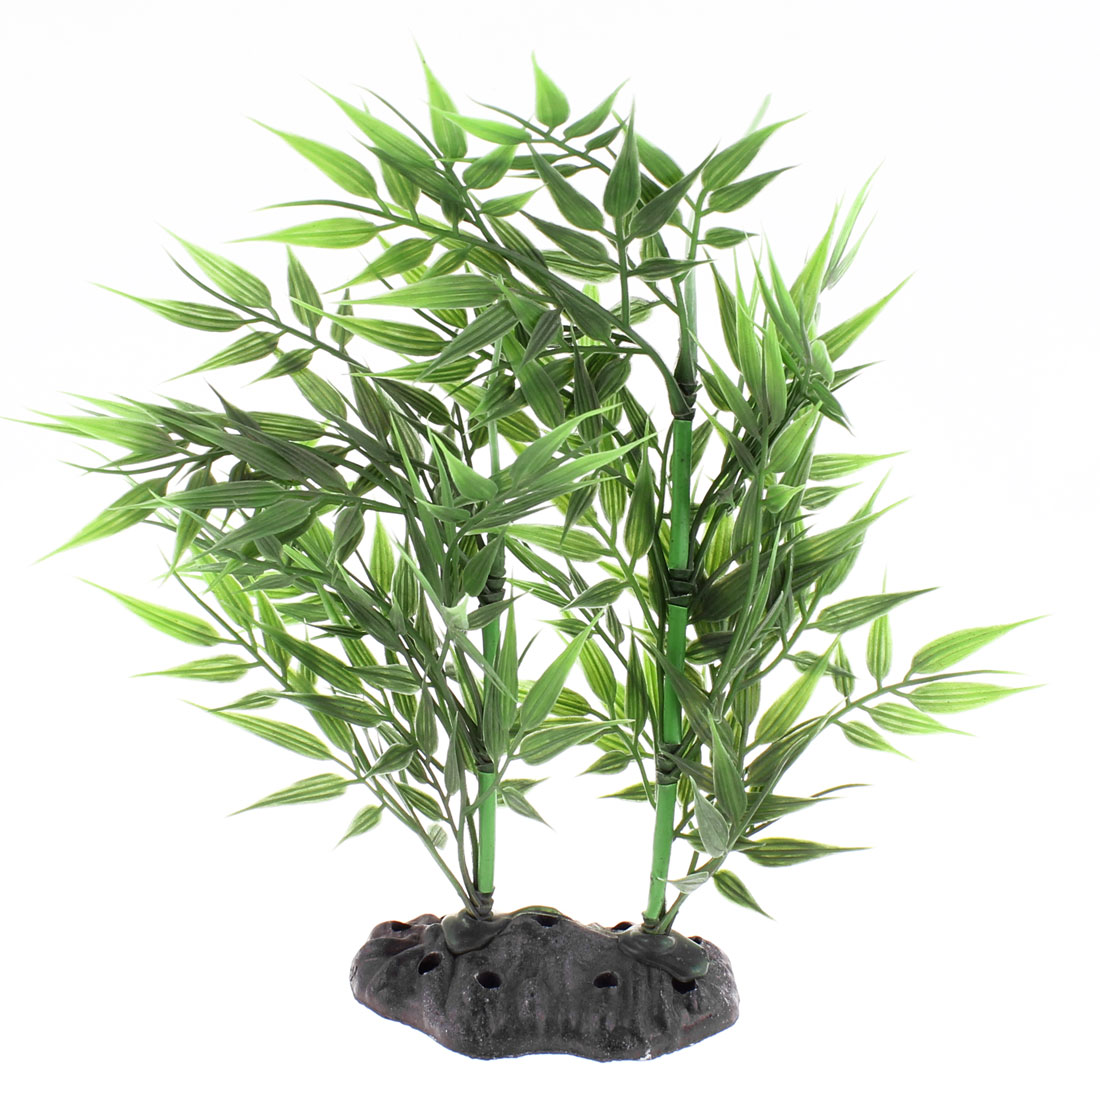 Aquarium Fish Tank Plastic Simulated Bamboo Plant Decor Water Ornament Green